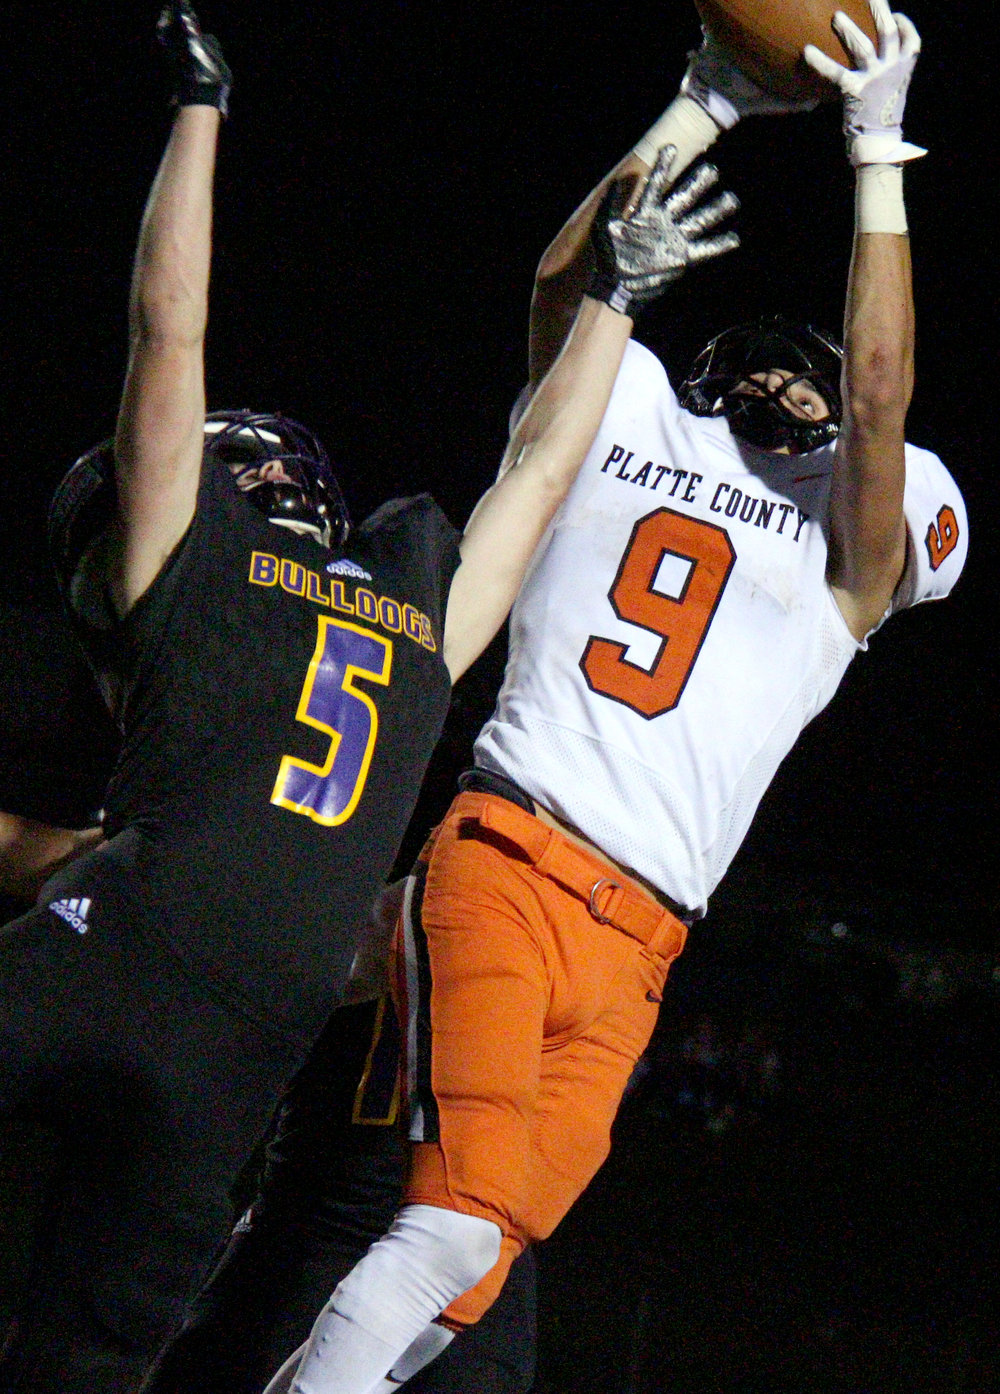 ROSS MARTIN/Citizen photo Platte County junior wide receiver Dylan Gilbert, right, makes a catch over a Kearney defender on Friday, Oct. 13 in Kearney, Mo.